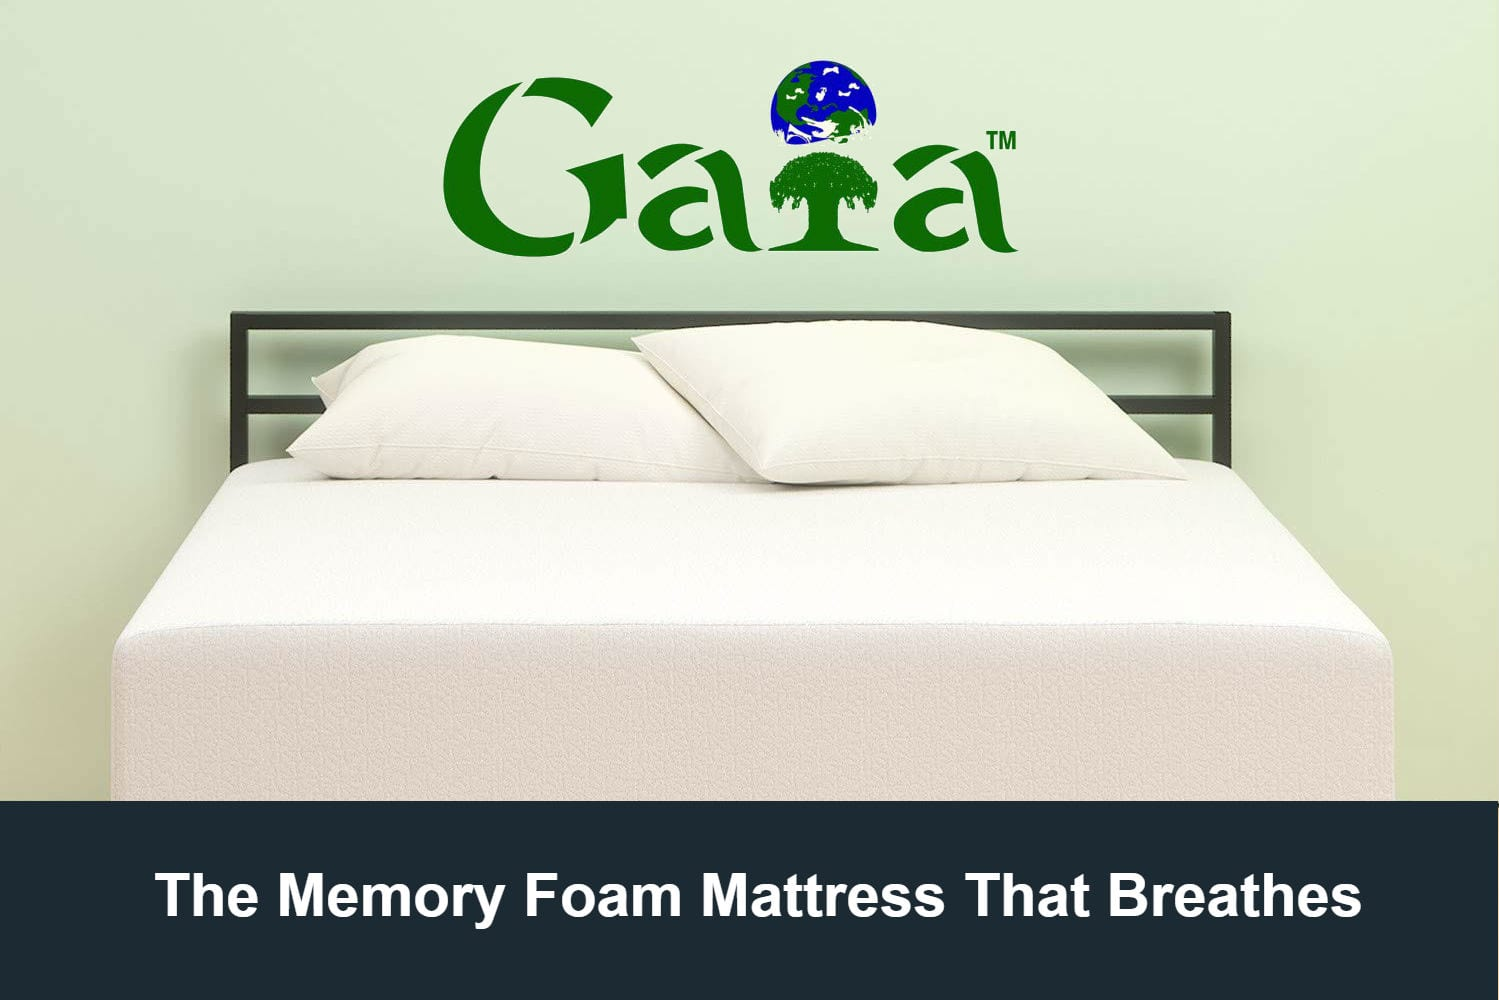 Gaia by Tempflow - The Memory Foam Mattress That Breathes